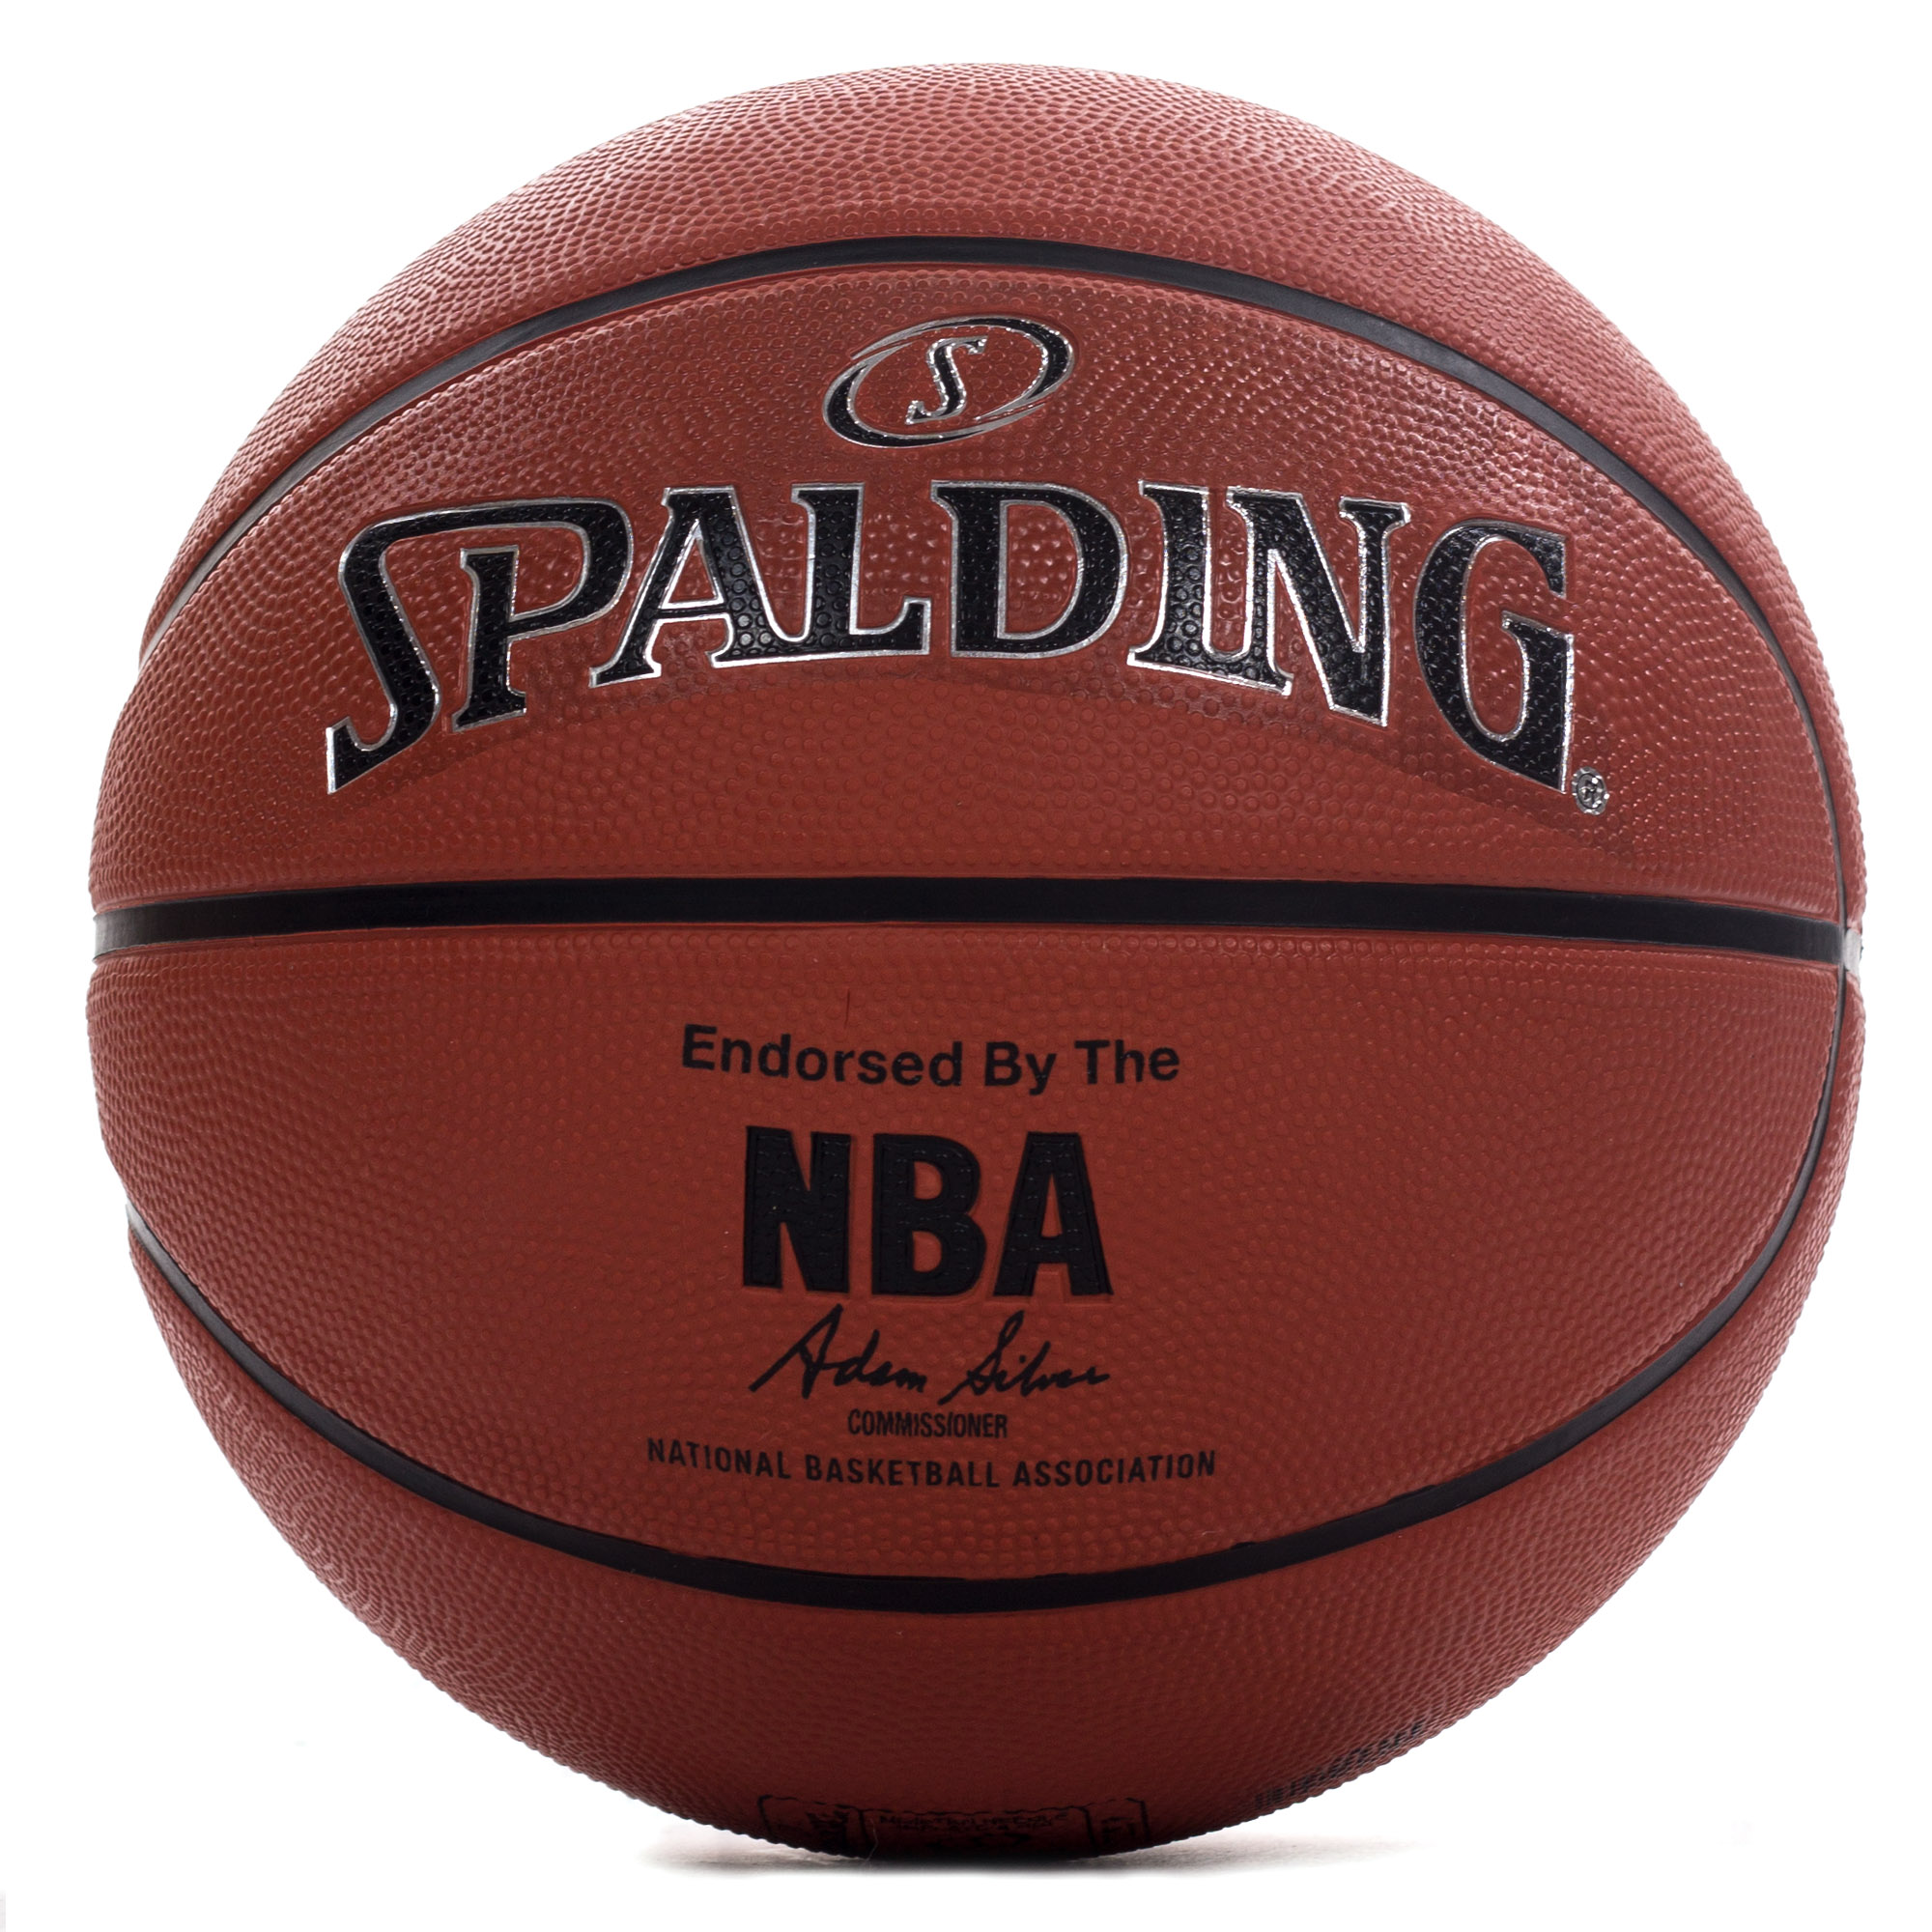 Spalding nba silver copmposite leather outdoor basketball brown 7 ebay - Spalding basketball images ...